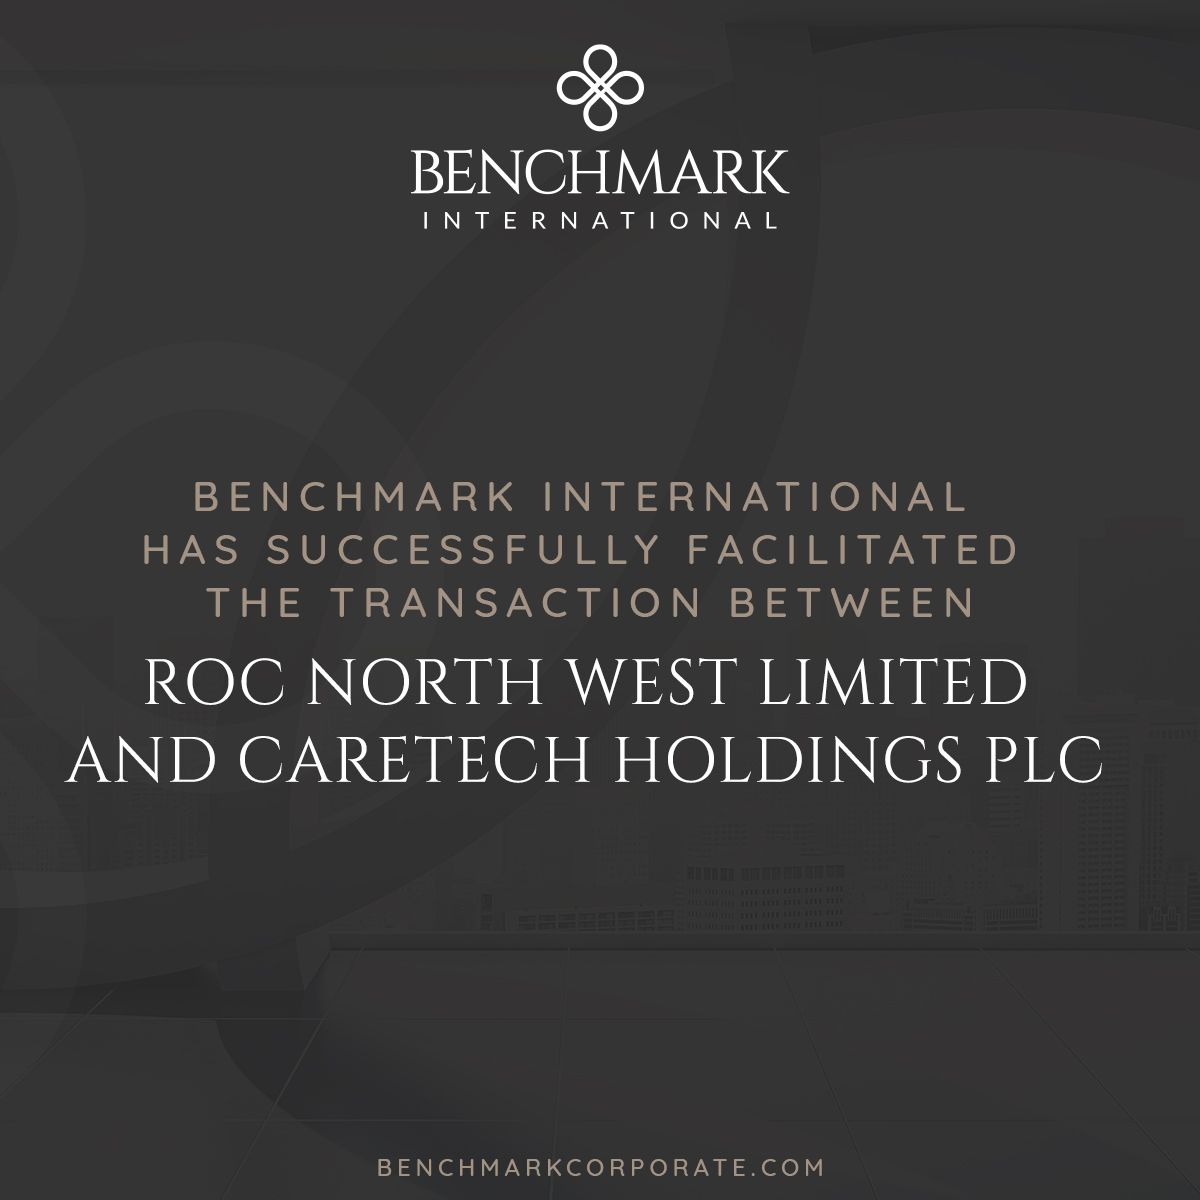 ROC North West Acquired by CareTech